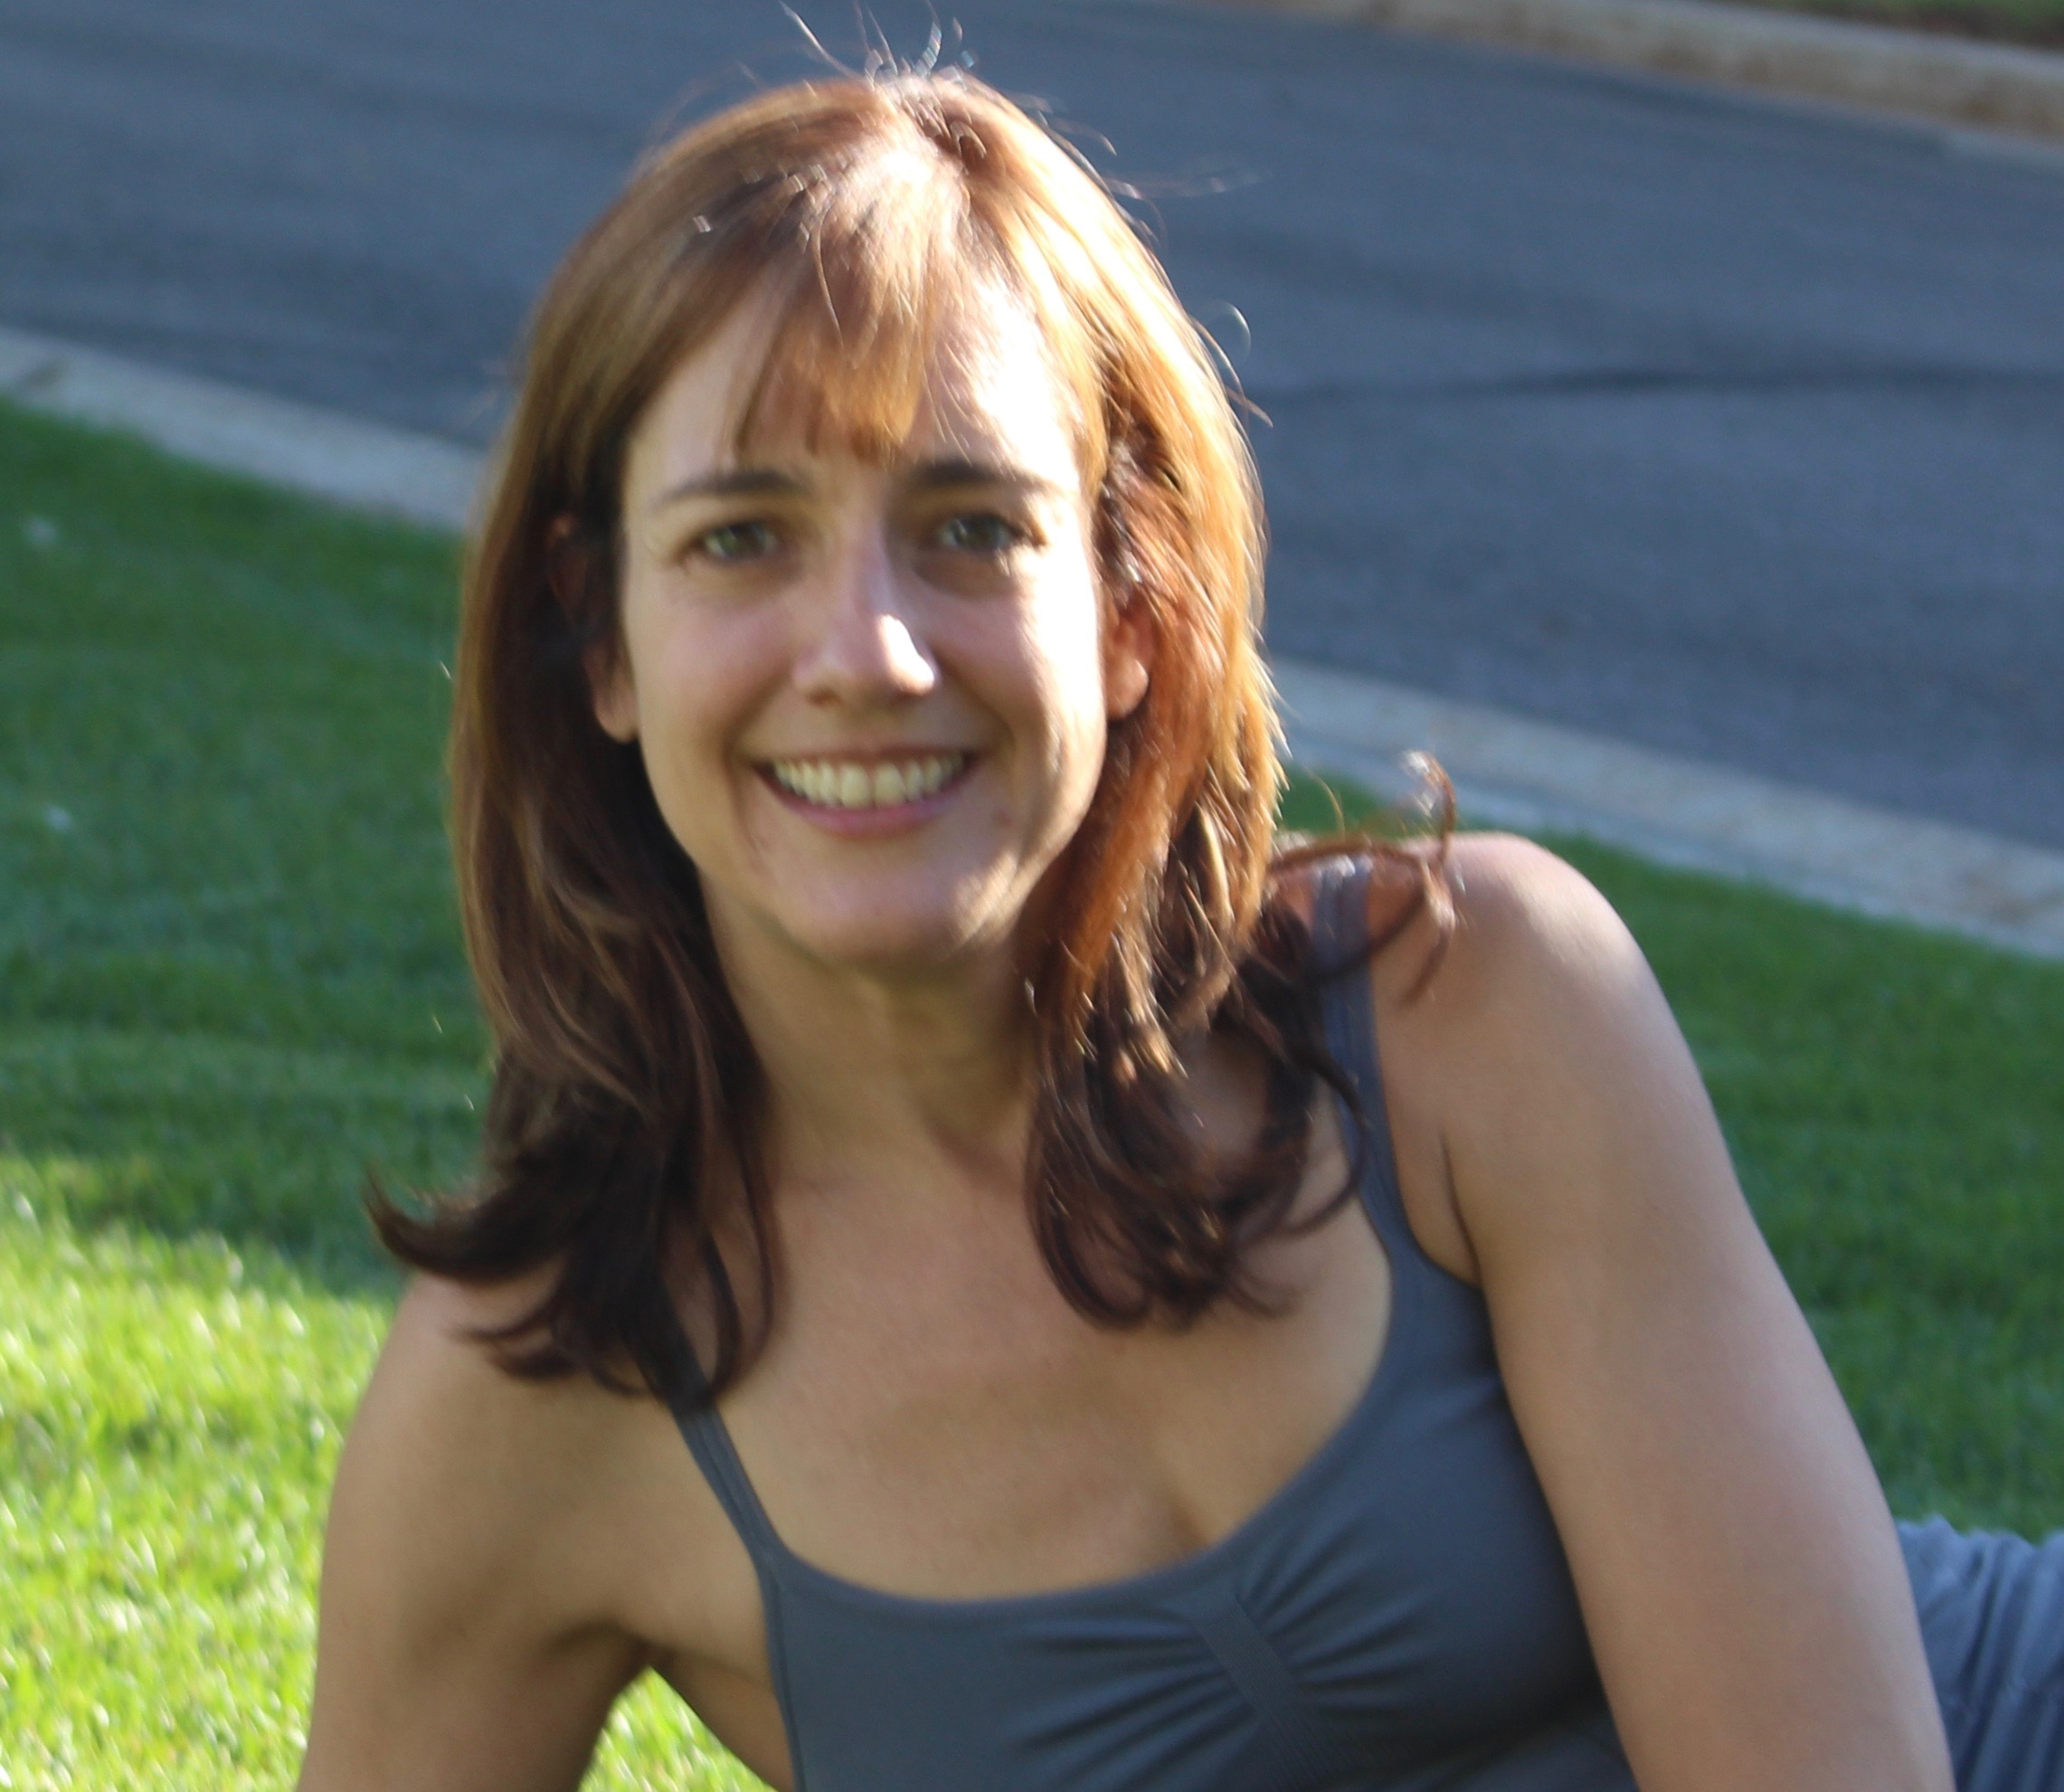 Meet Elisa - Elisa is the owner of Peak Power Yoga in Park City. She has more than 325 official training hours, has attended seven yoga retreats and has led the yoga for a retreat weekend at Stillwater Retreats. Elisa has been teaching yoga for five years, both in her own studio, and at local venues in Park City. Elisa loves sharing her passion, and has many students that claim her classes are